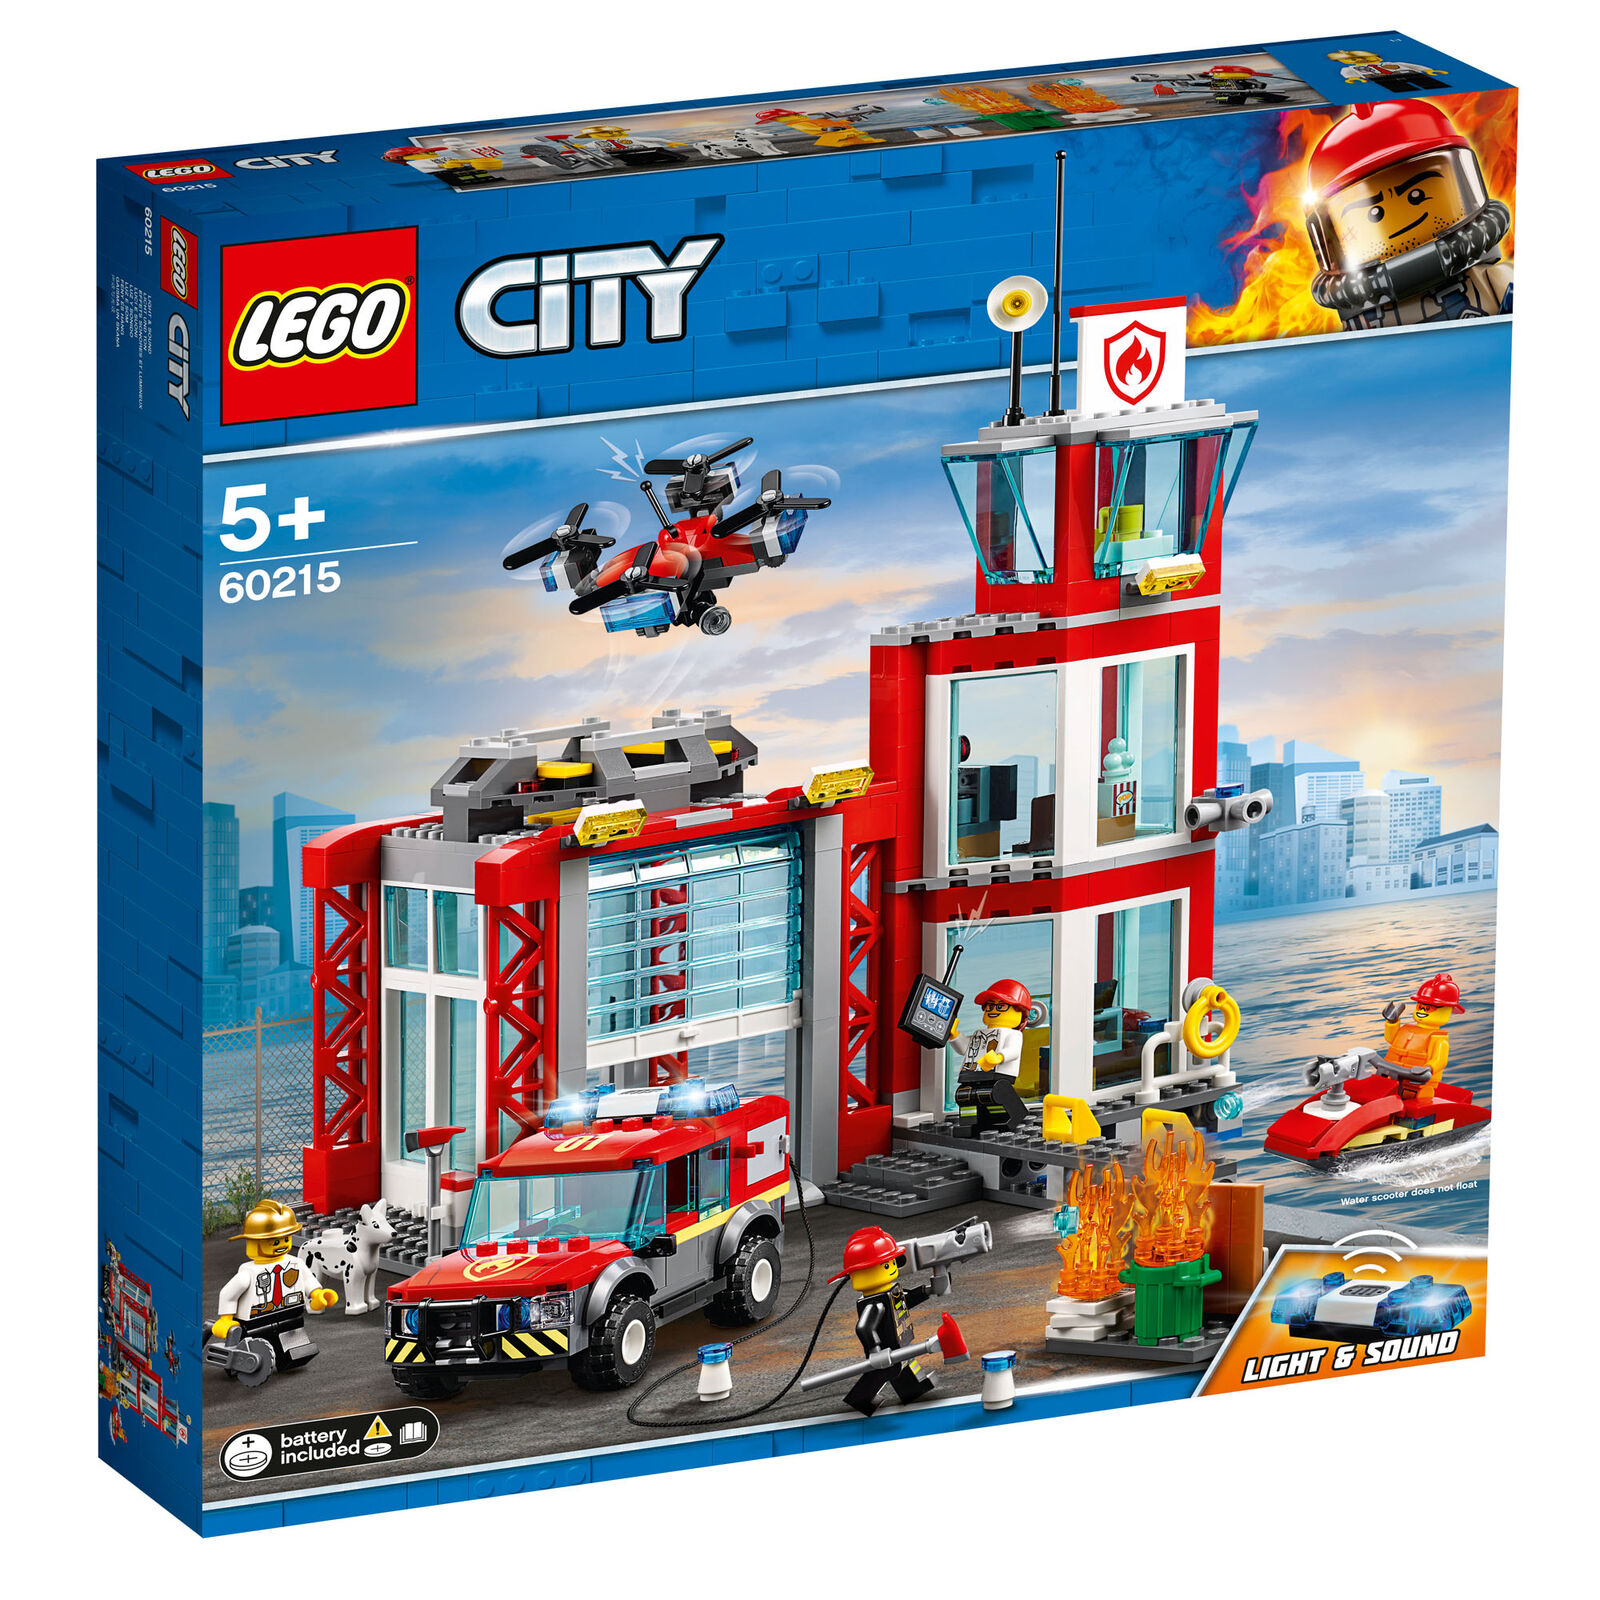 60215 LEGO CITY Fire Station 509 Pieces Age 5+ New Release for 2019